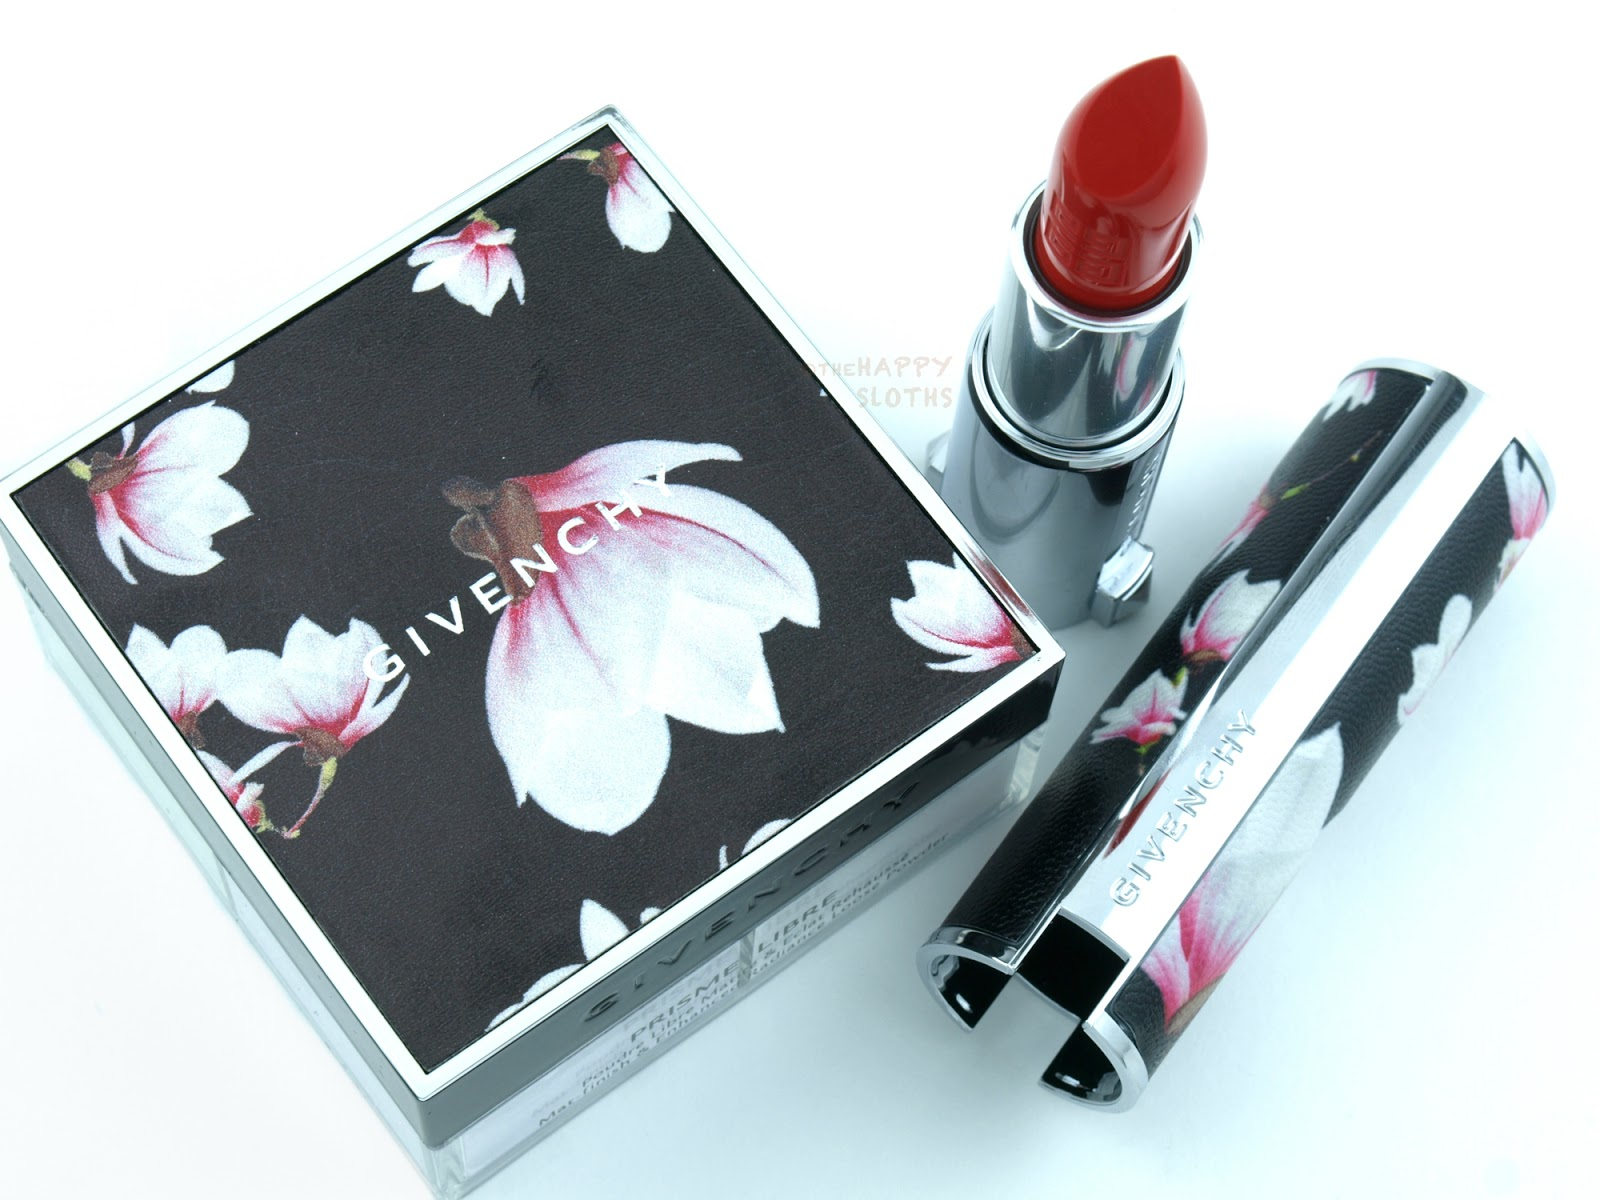 Givenchy 2016 Edition Couture Le Rouge Lipstick & Prisme Libre Loose Powder: Review and Swatches